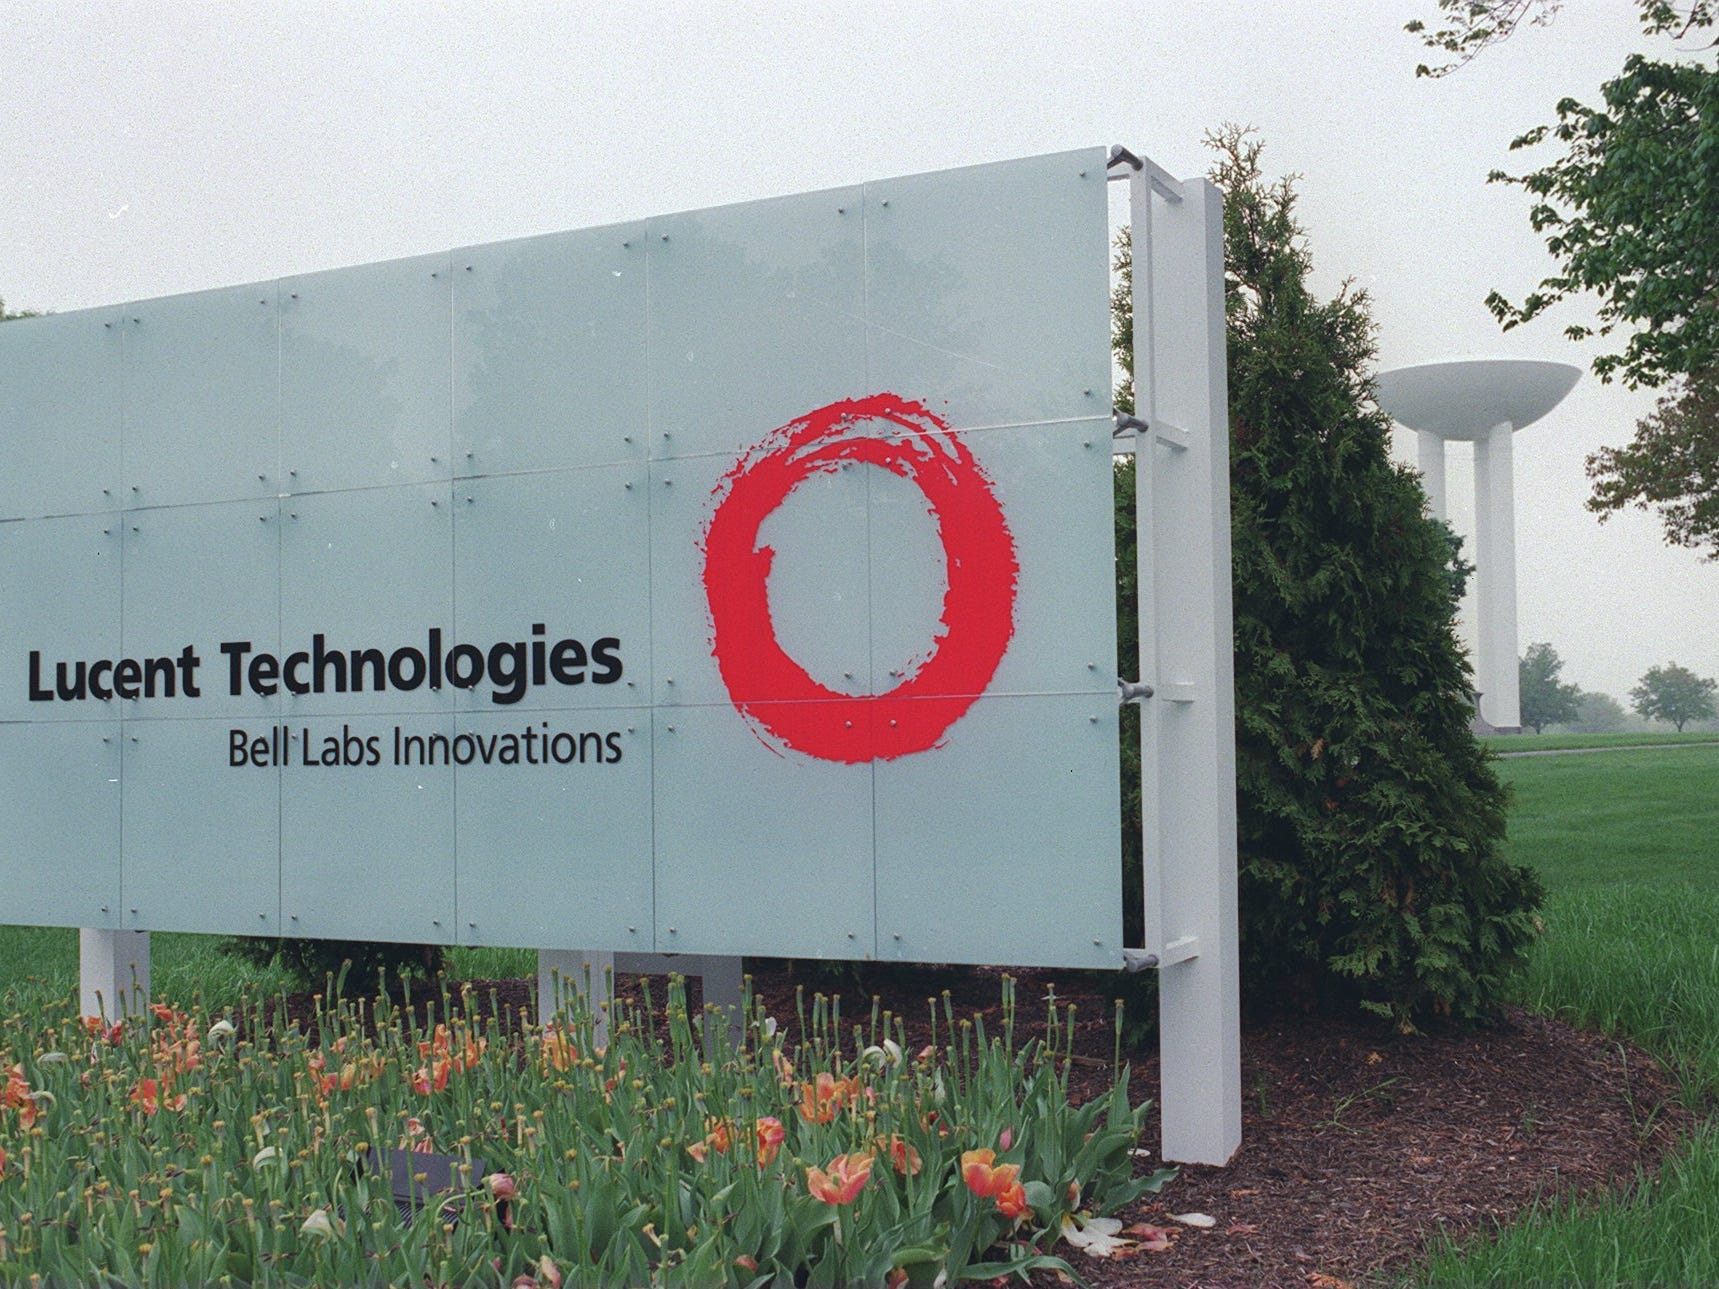 Holmdel, 5/6/98 - Exterior of Lucent Technologies - Bell Labs in Holmdel. ...